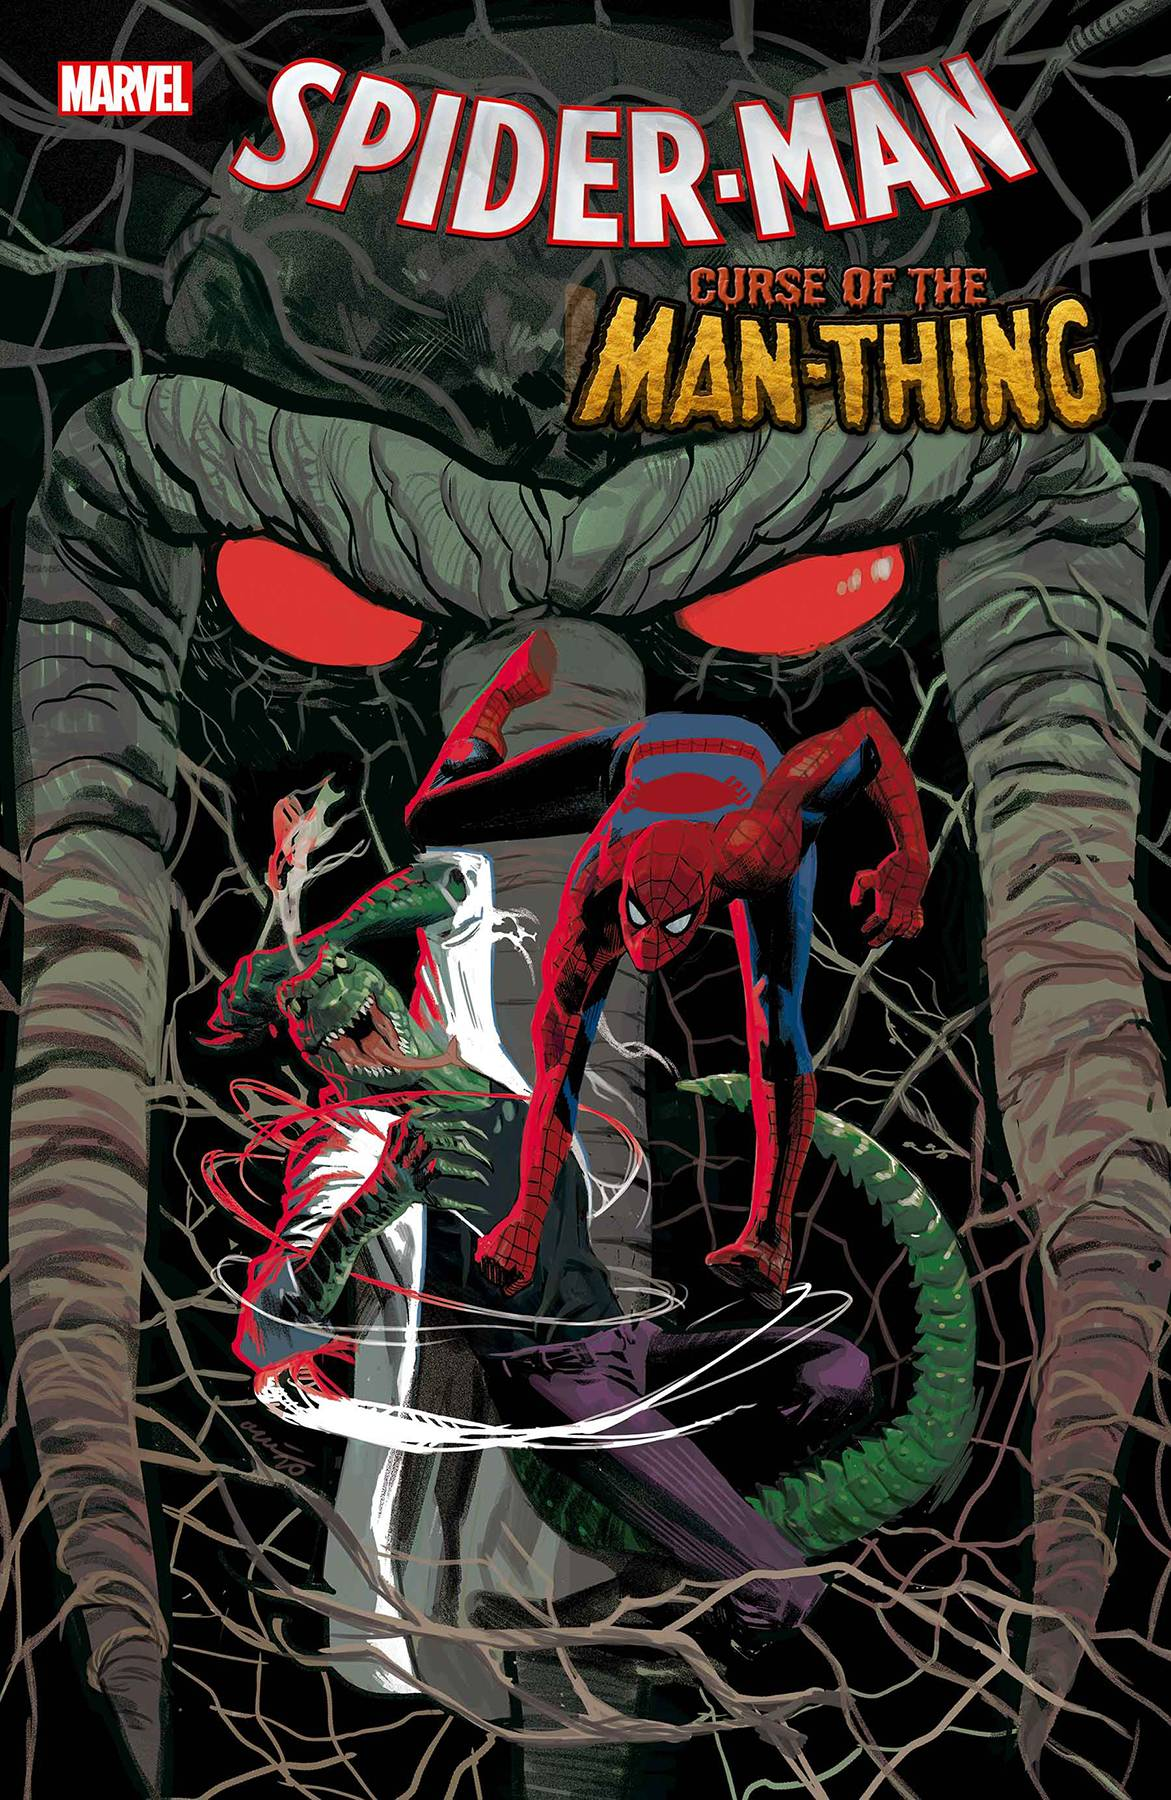 CURSE OF MAN-THING